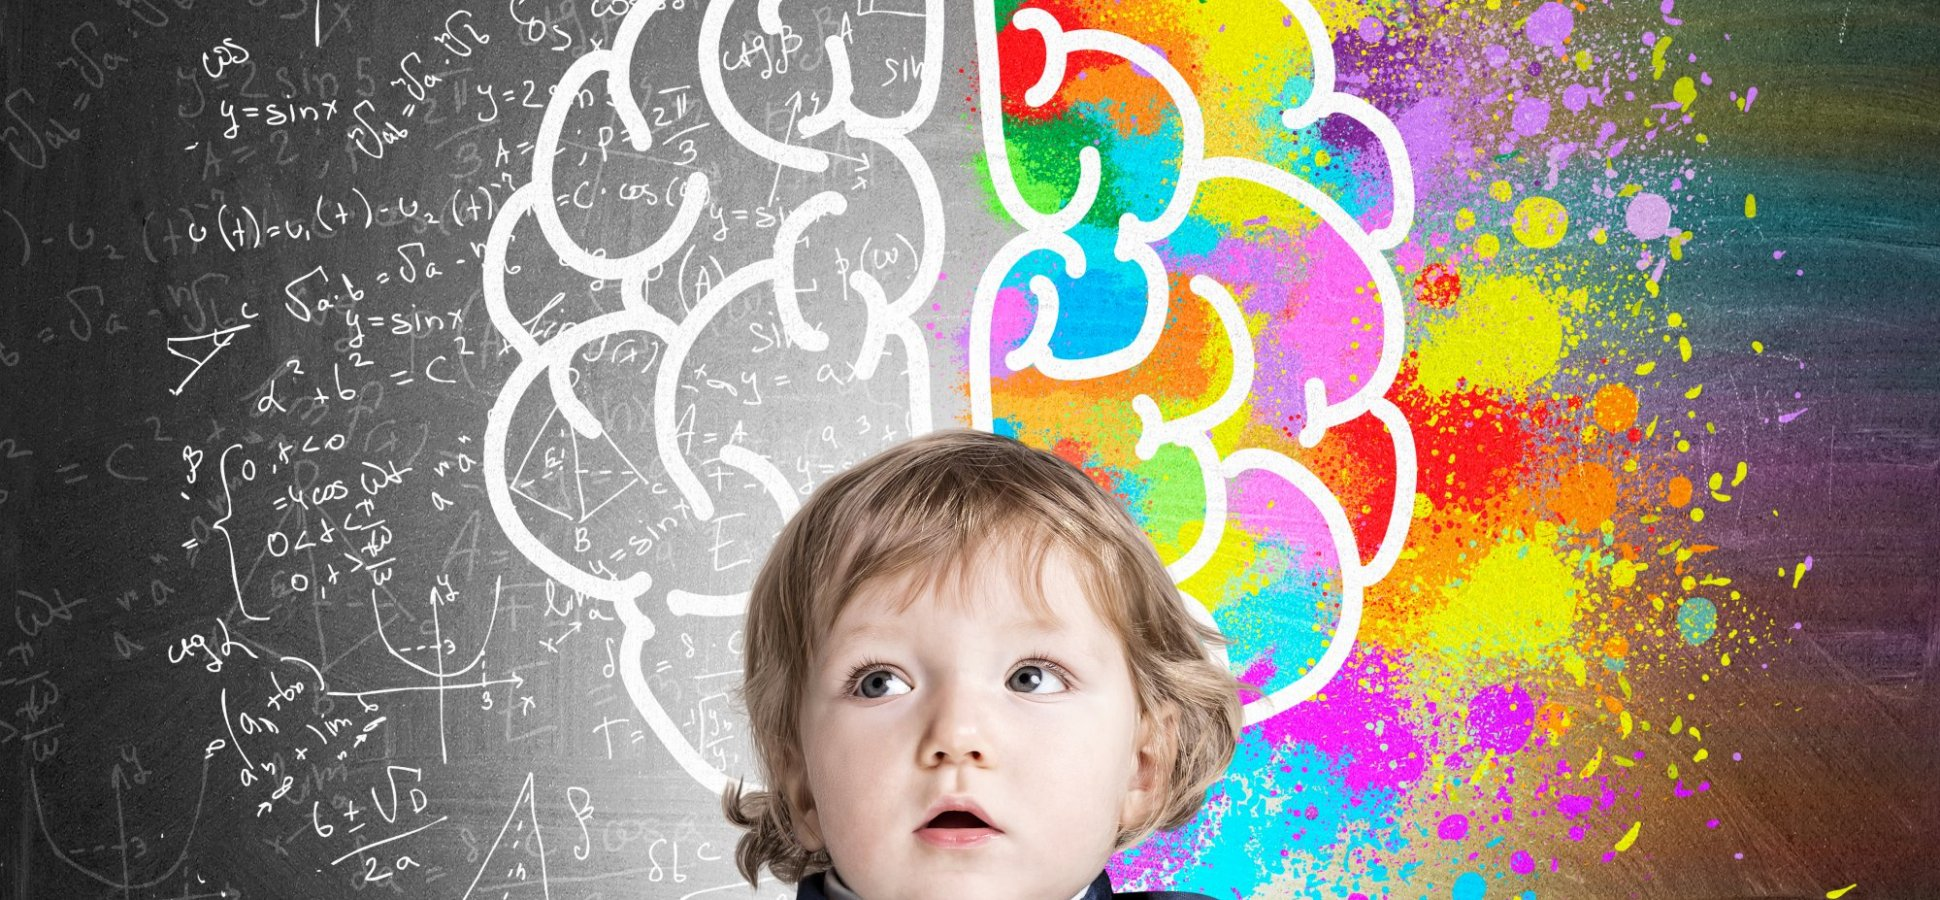 5 Ways to Use Your Brain to Become a Better Innovator